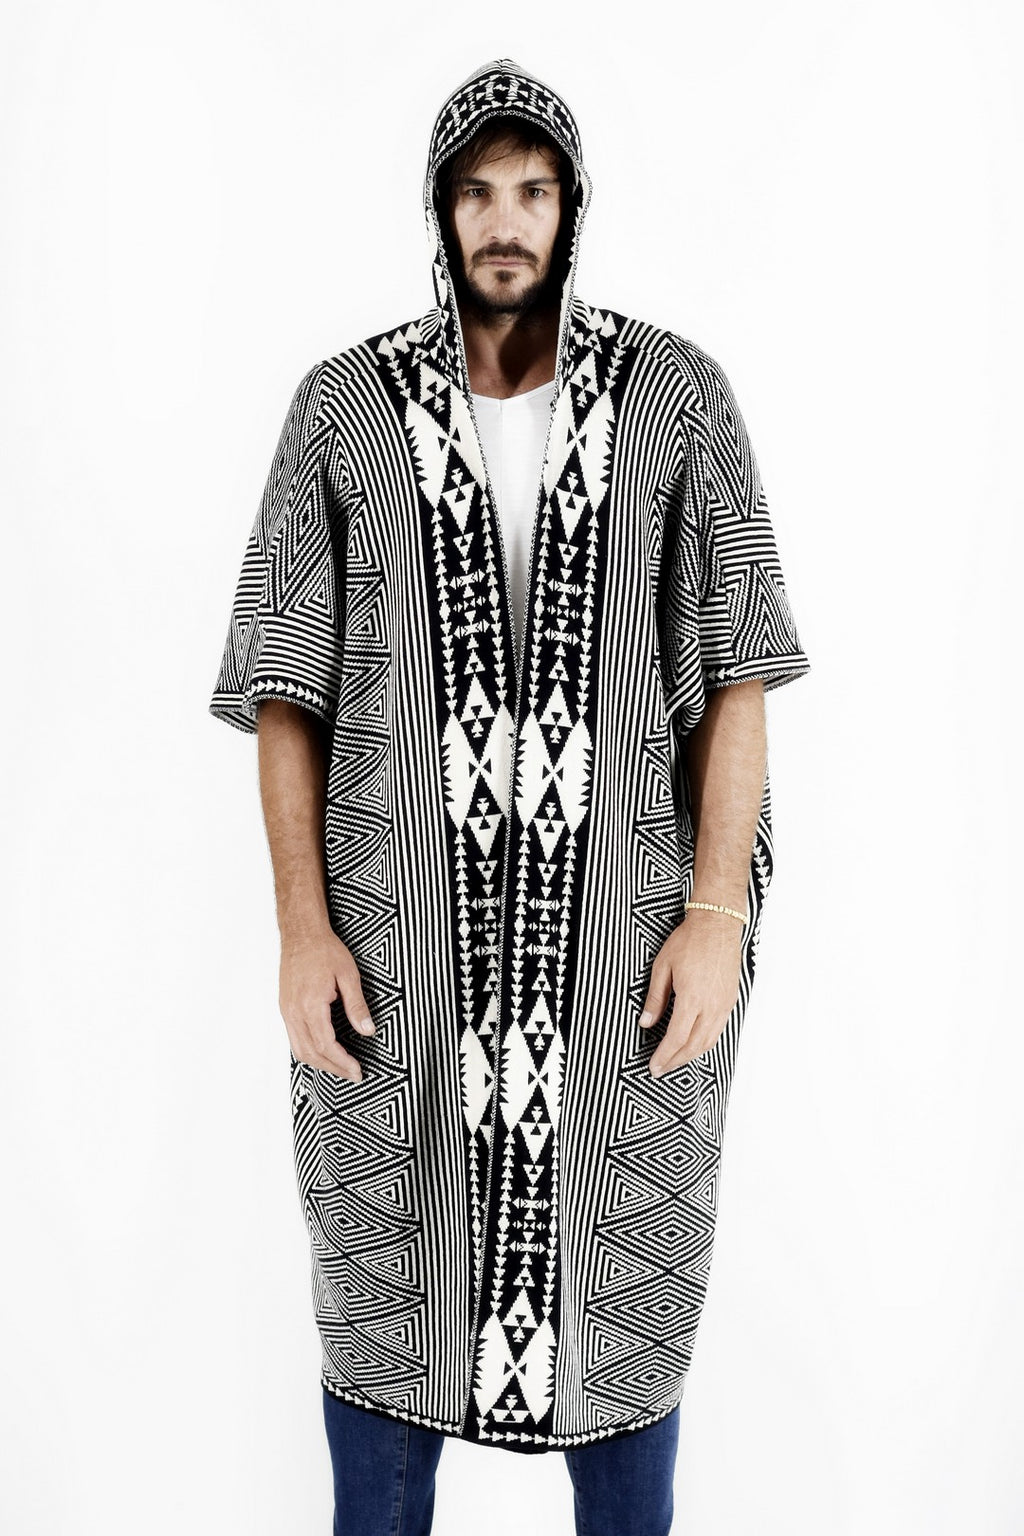 Mens Knitwear Poncho with Ethnic Jacquard Design ZG5177